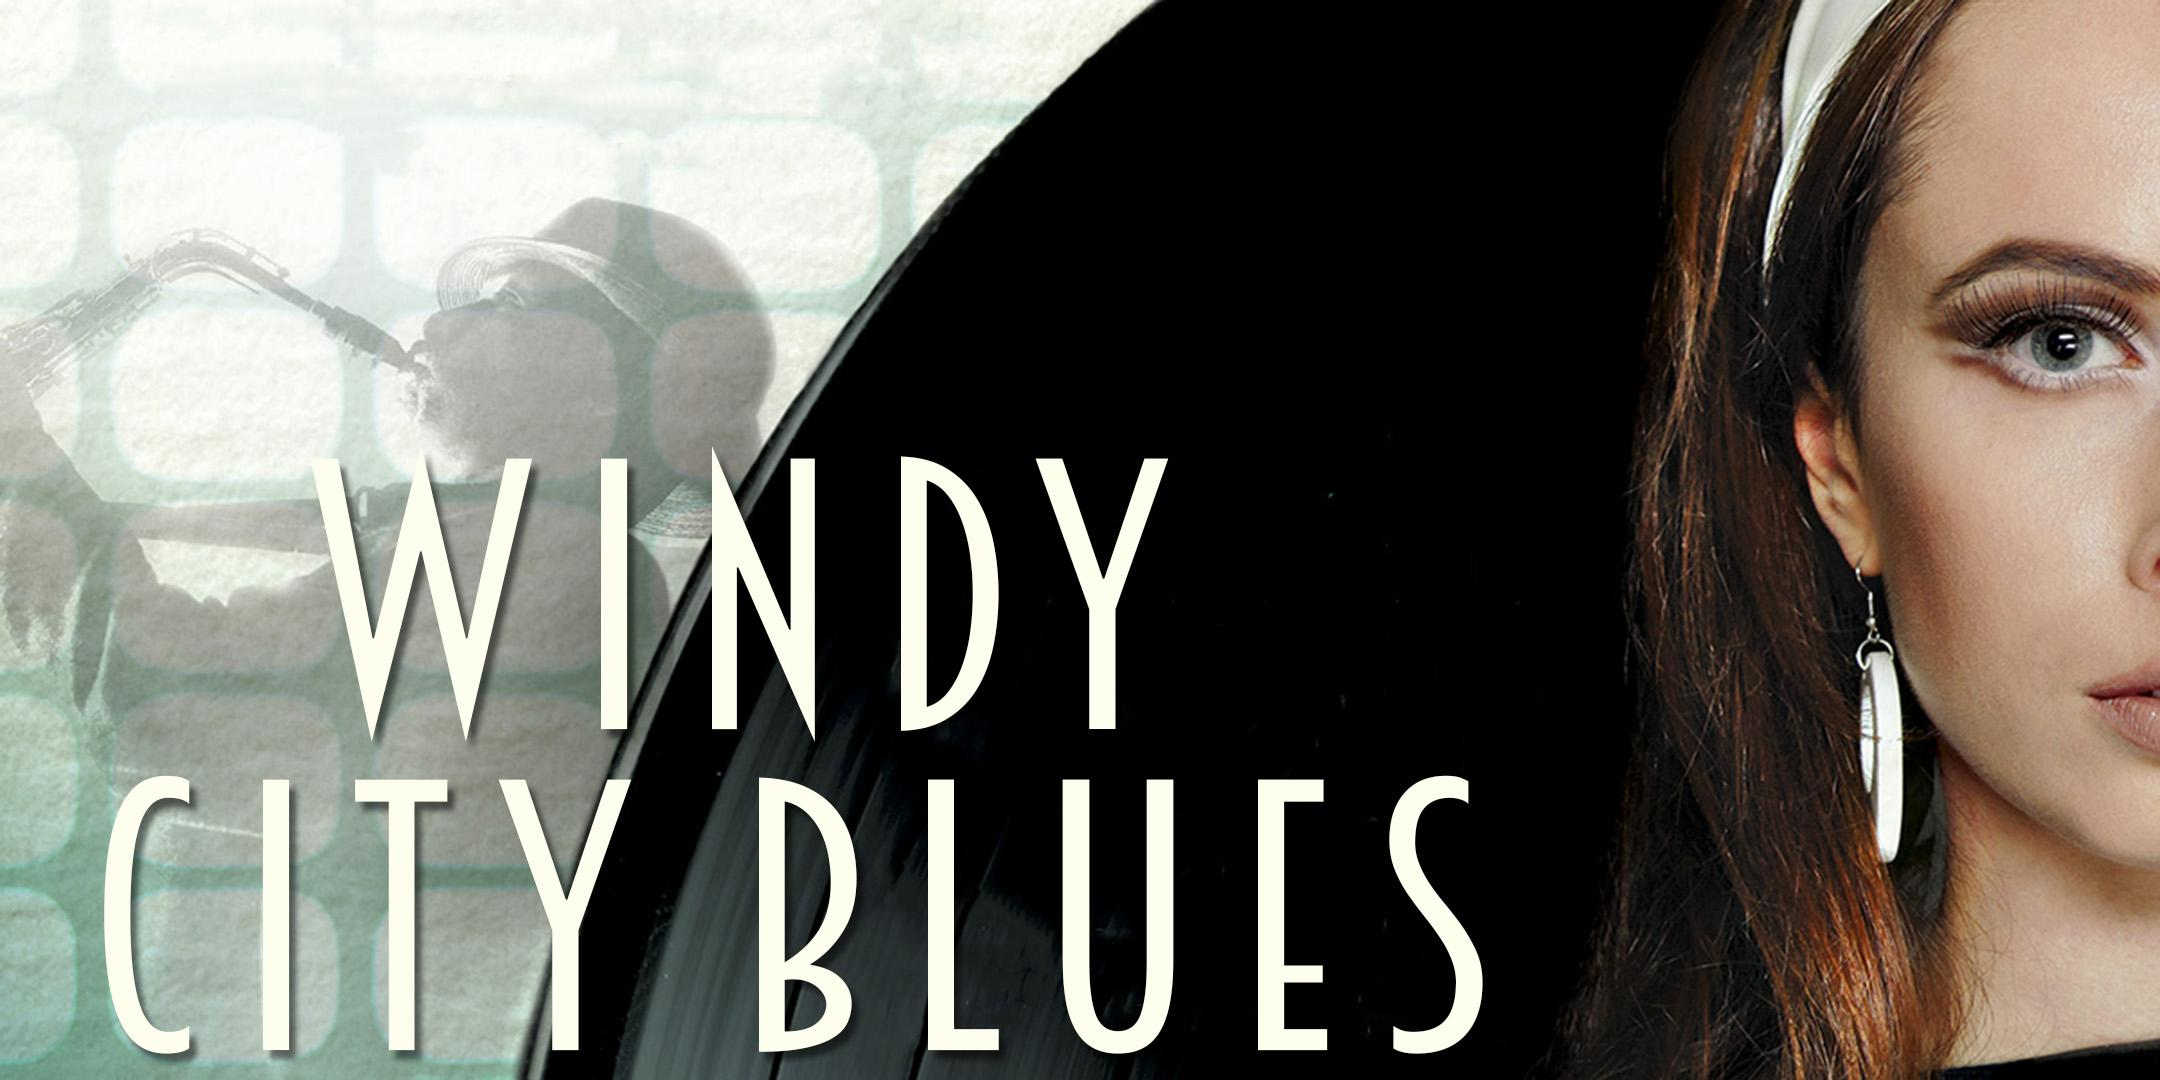 Chicago Author Event: Windy City Blues Finale | Chicago, IL | Spertus Institute for Jewish Learning and Leadership | December 10, 2017